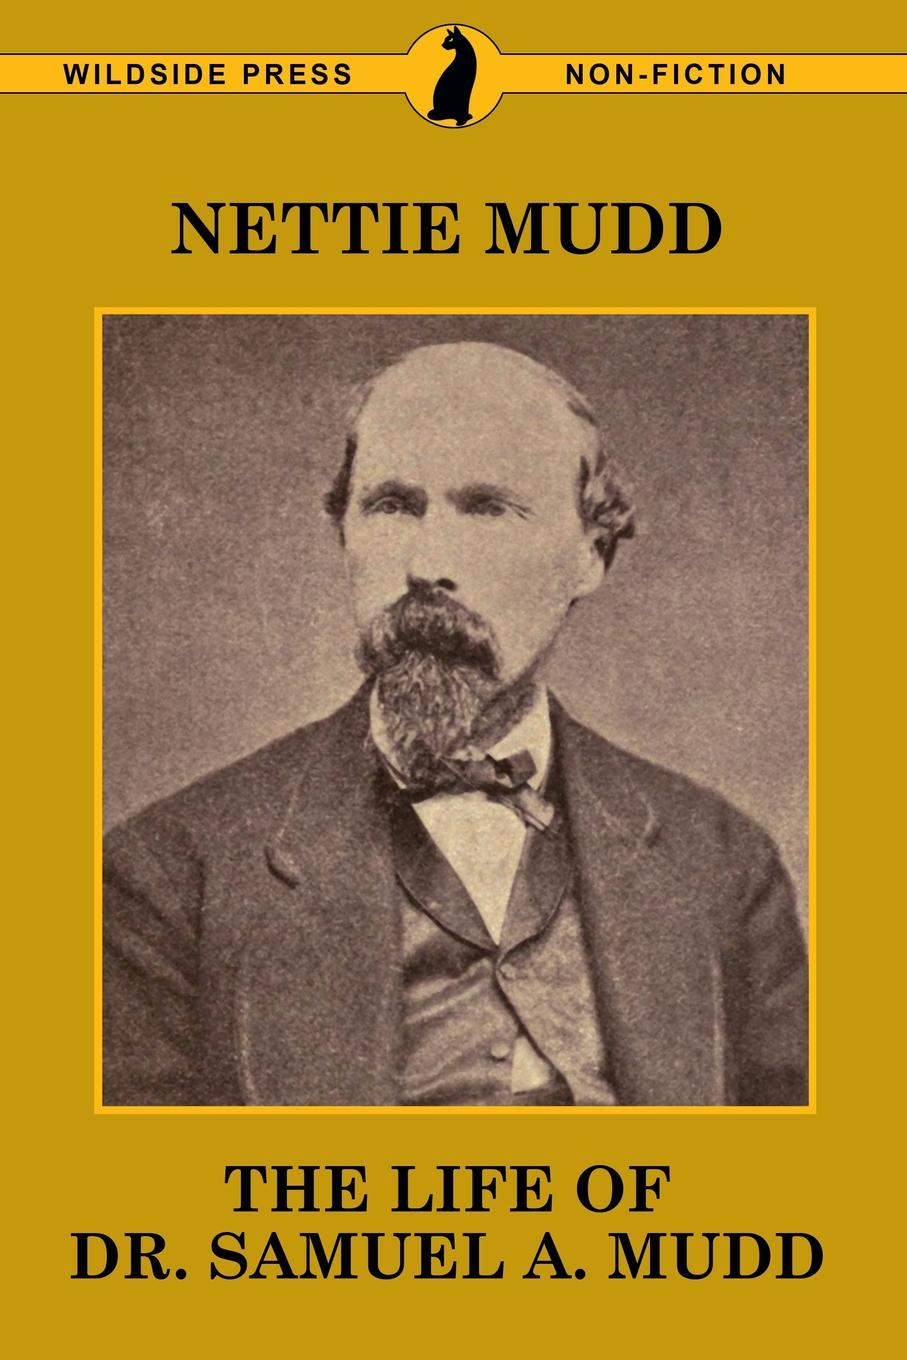 Nettie Mudd The Life of Dr. Samuel A. Mudd q k philander doesticks plu ri bus tah a song that s by no author a deed without a name